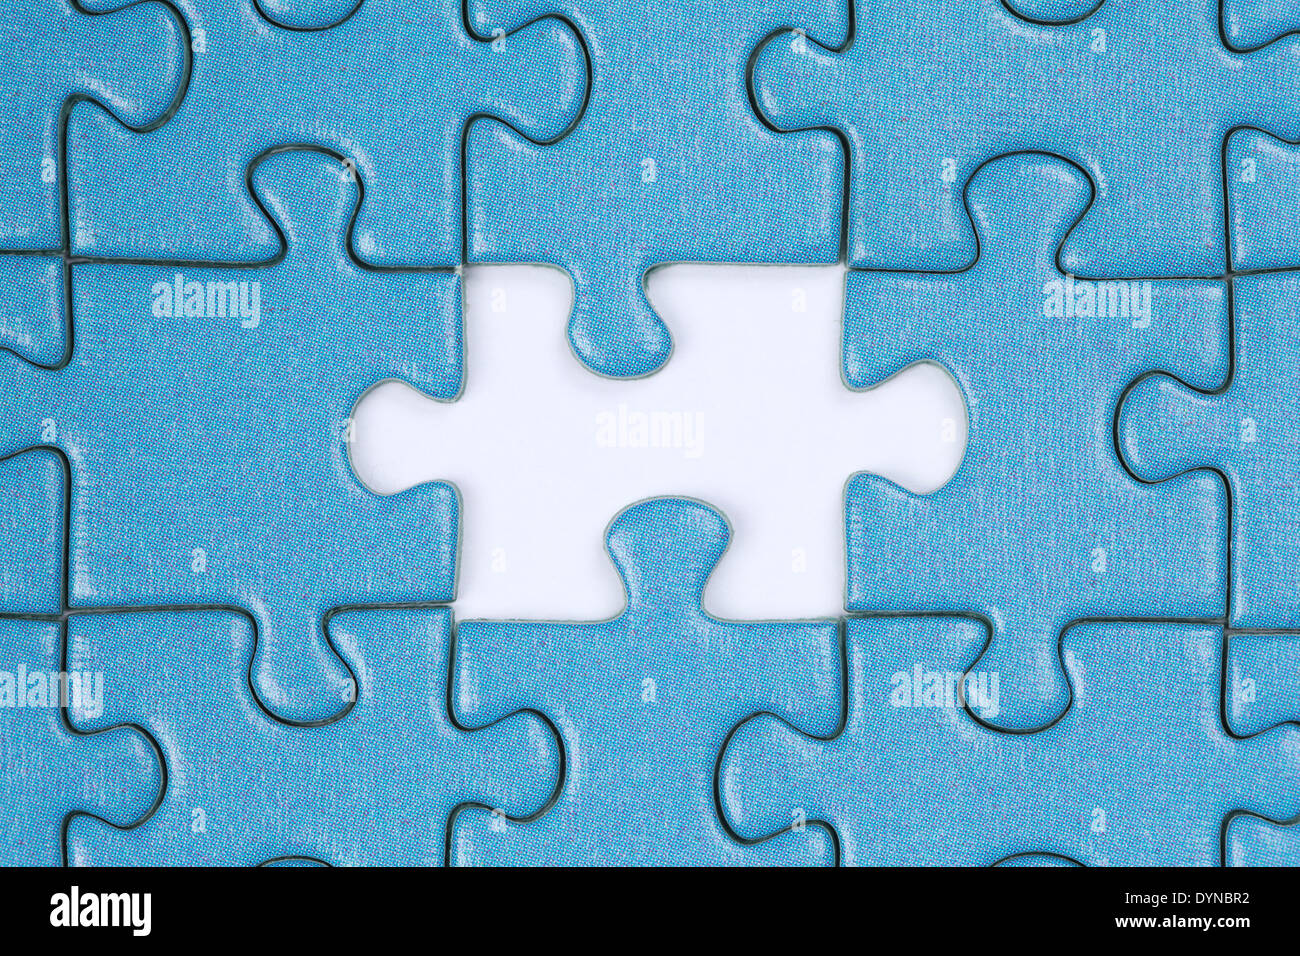 Jigsaw Puzzle with the last missing piece - Stock Image